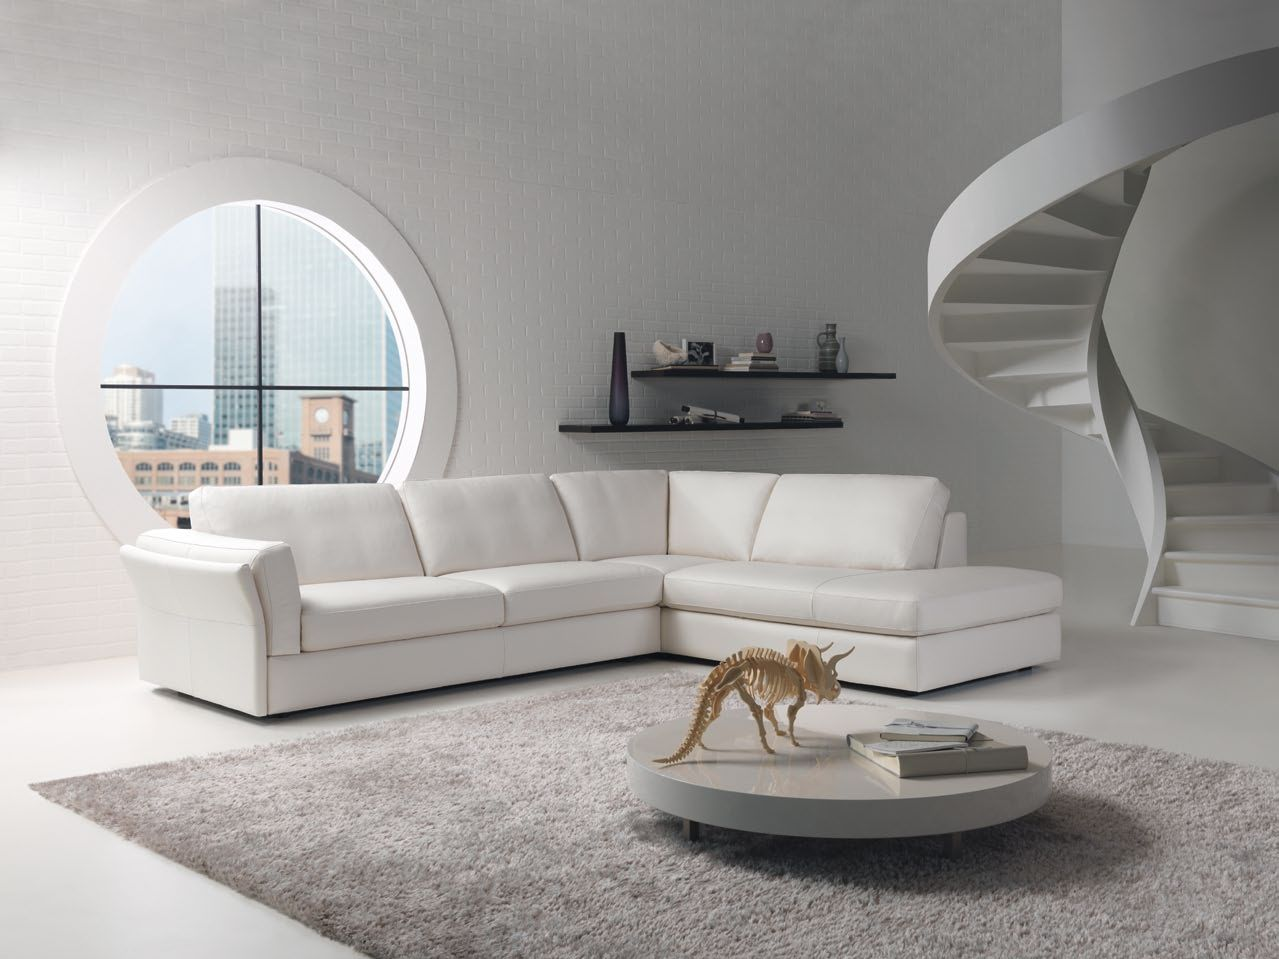 the simple living rooms have more design ideas to decorate the